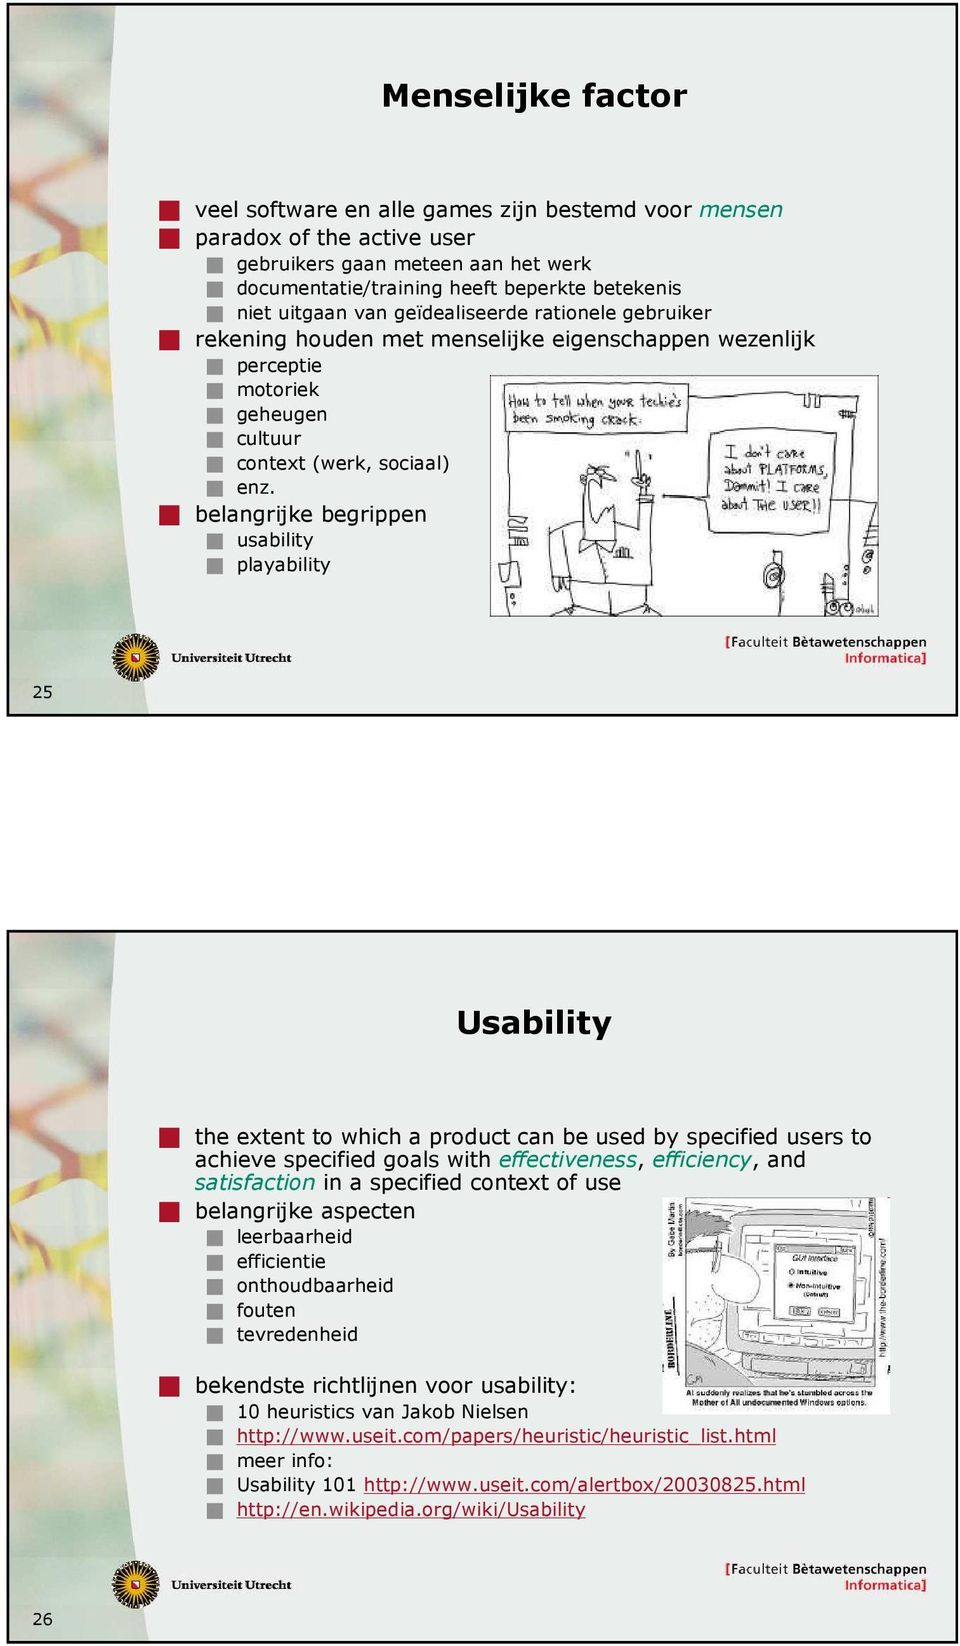 belangrijke begrippen usability playability 25 Usability the extent to which a product can be used by specified users to achieve specified goals with effectiveness, efficiency, and satisfaction in a